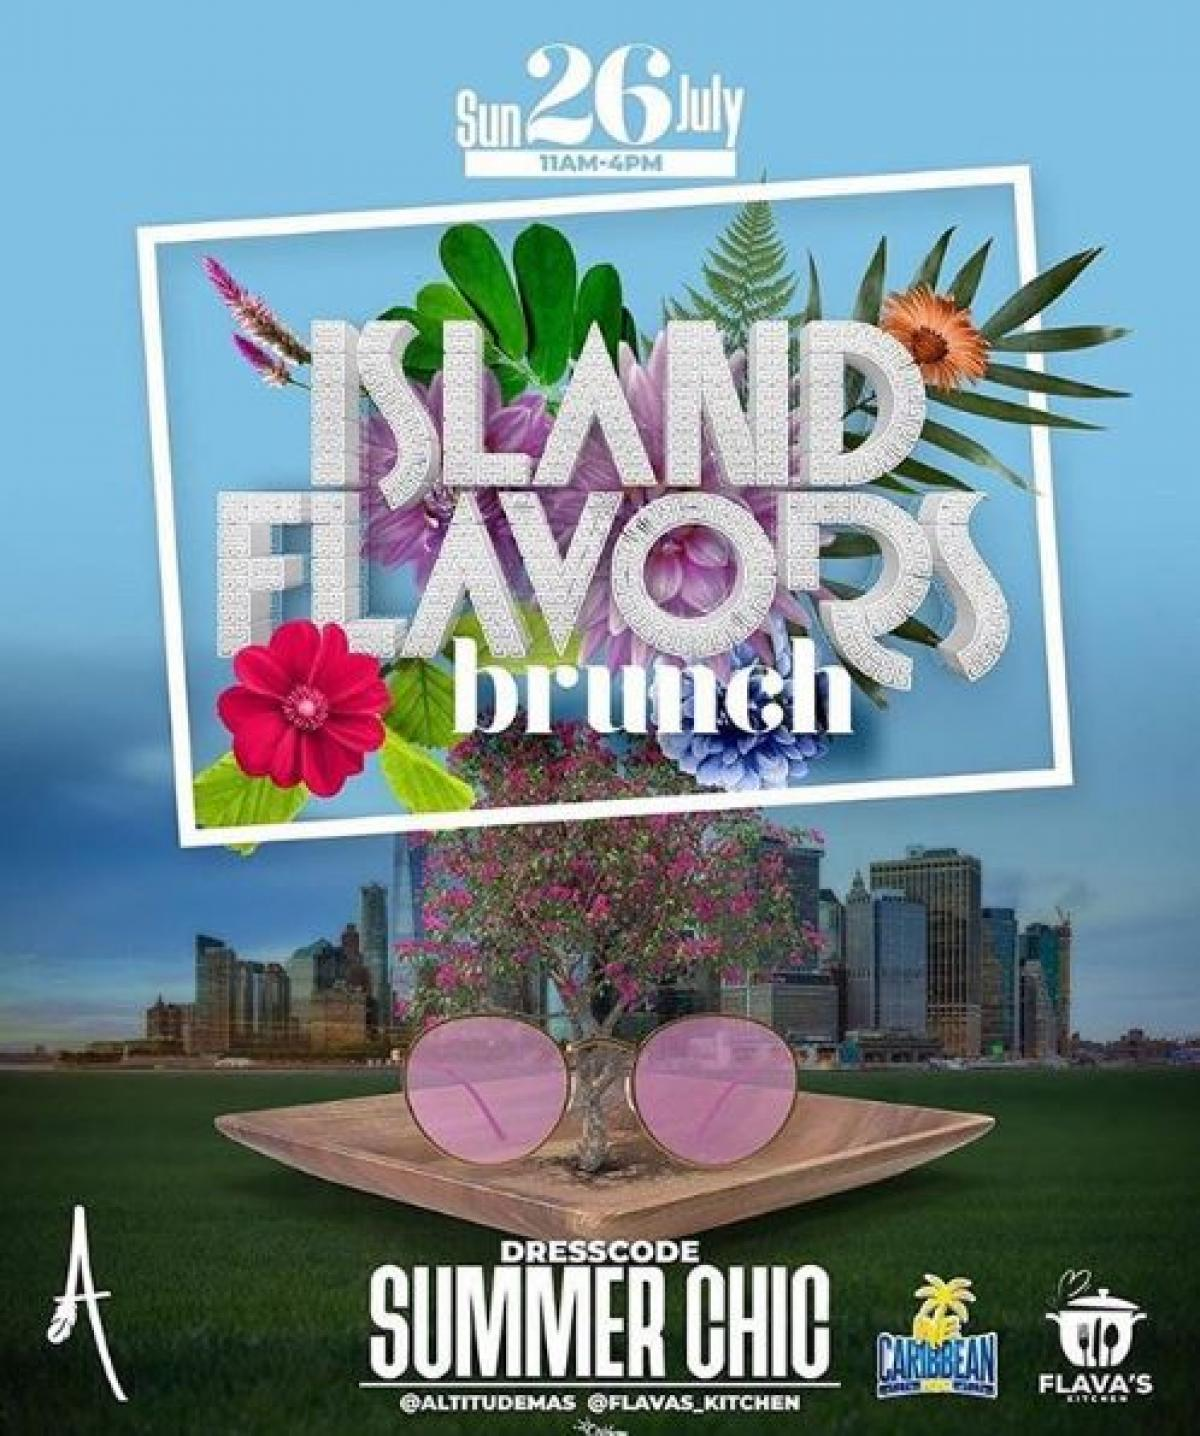 Island Flavors Brunch flyer or graphic.